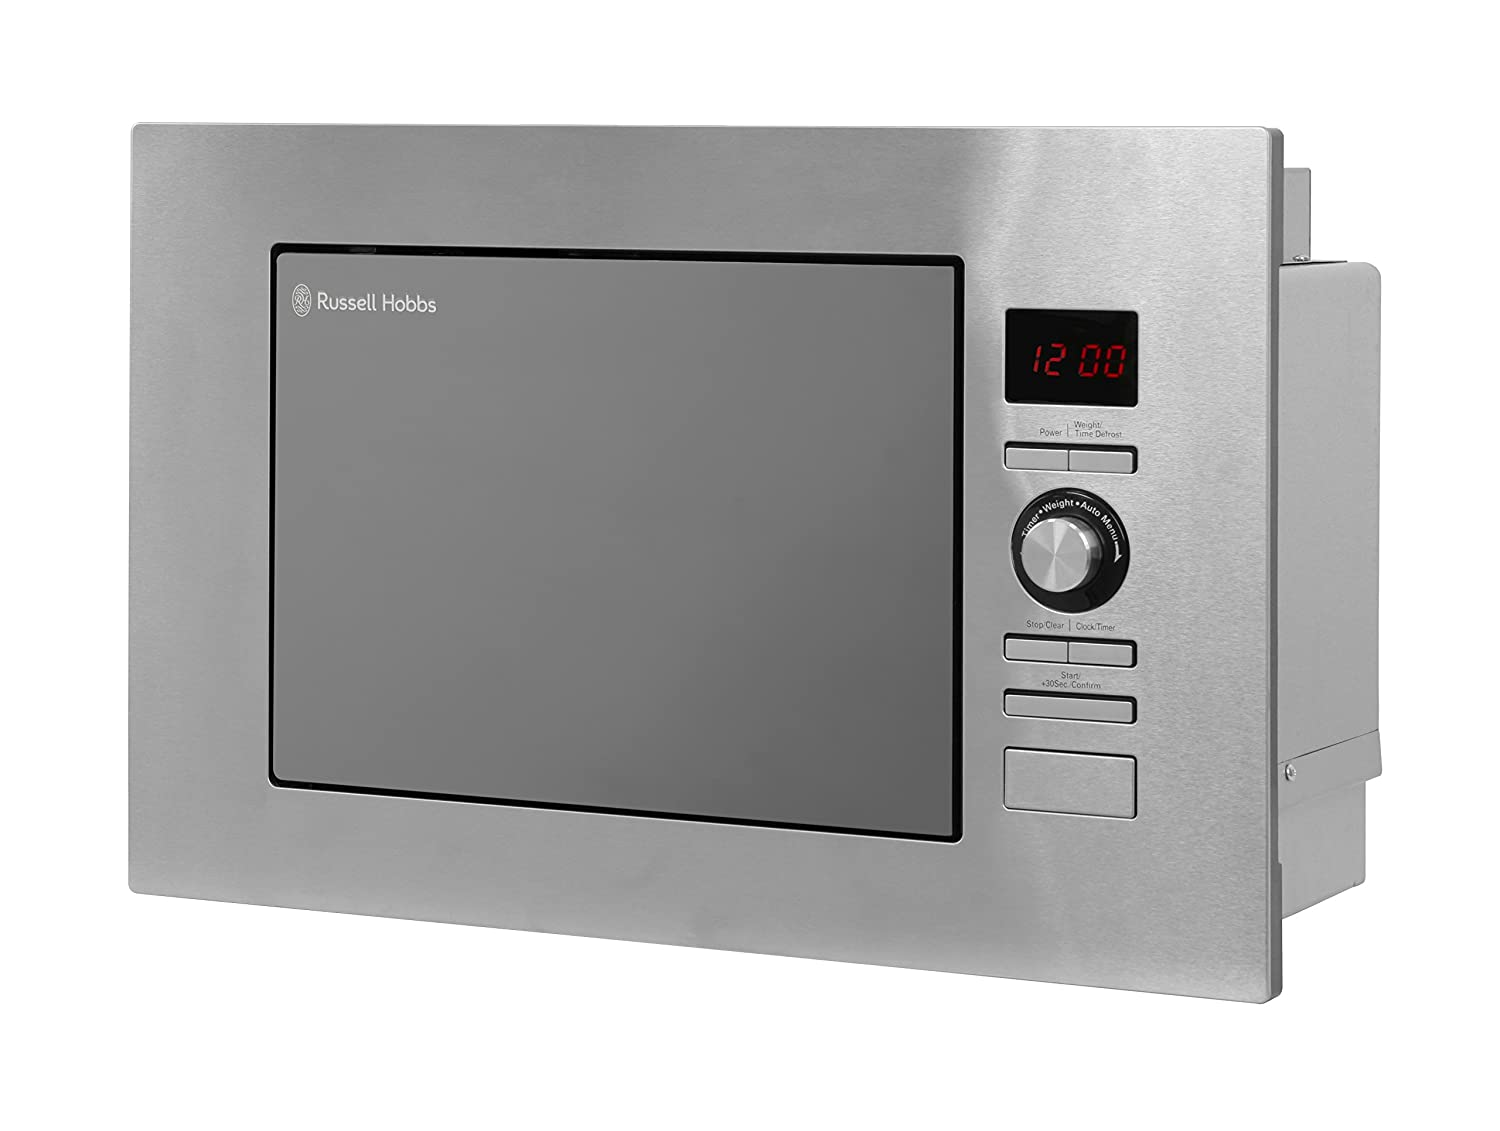 Russell Hobbs RHBM2003 20L Built In Digital 800w Solo Microwave Stainless Steel